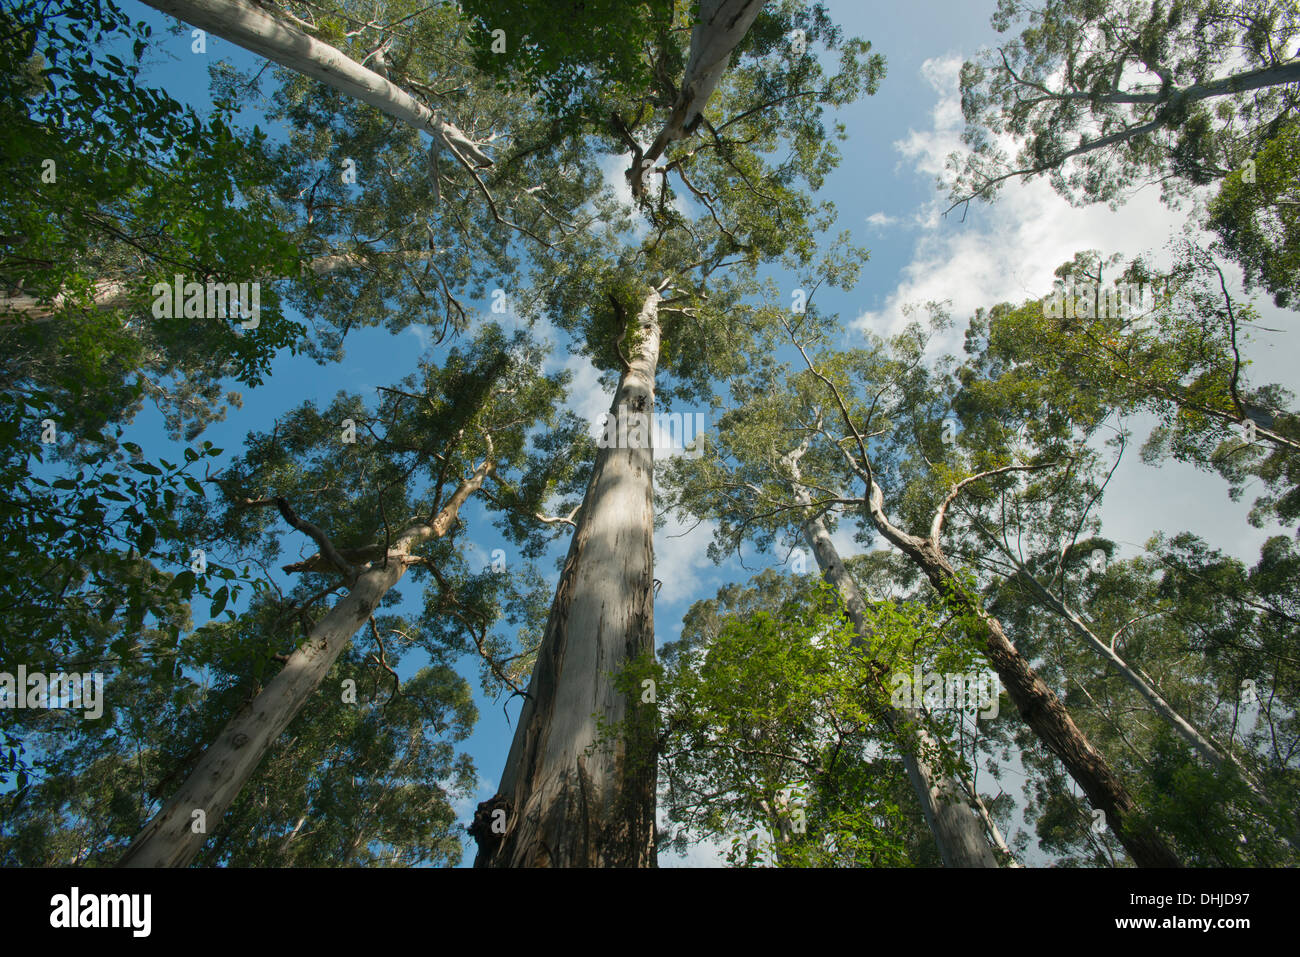 Giant Karri Trees (Eucalyptus diversicolor) Big Tree Grove, up to 90 meters tall, near Northcliffe, Western Australia - Stock Image